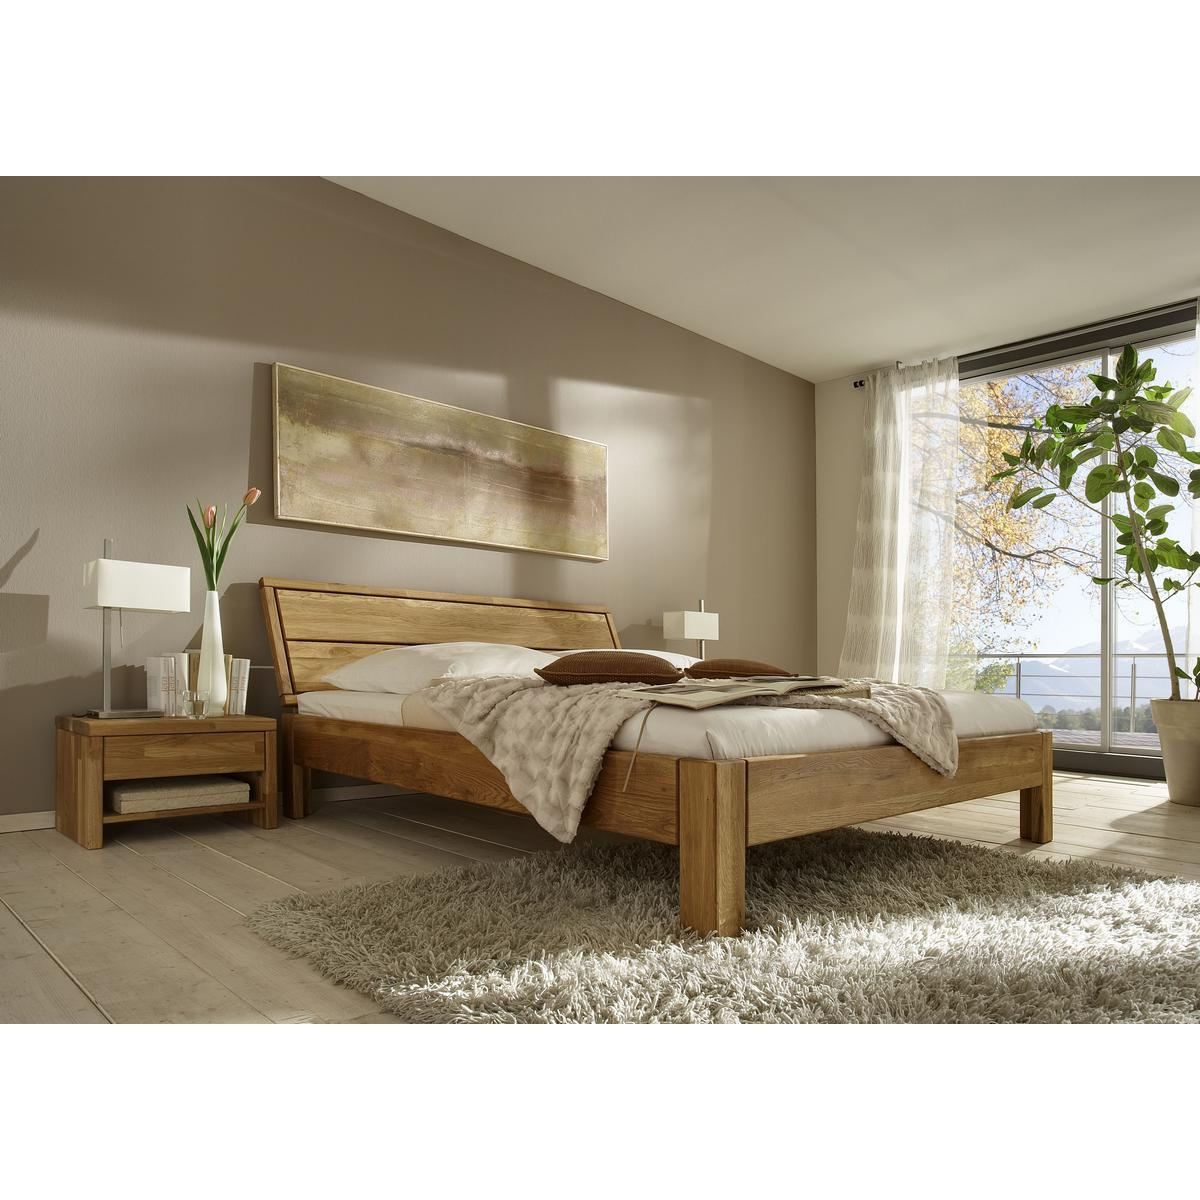 massivholz bett 140x200 easy sleep eiche massiv ge lt 9414 93 3. Black Bedroom Furniture Sets. Home Design Ideas